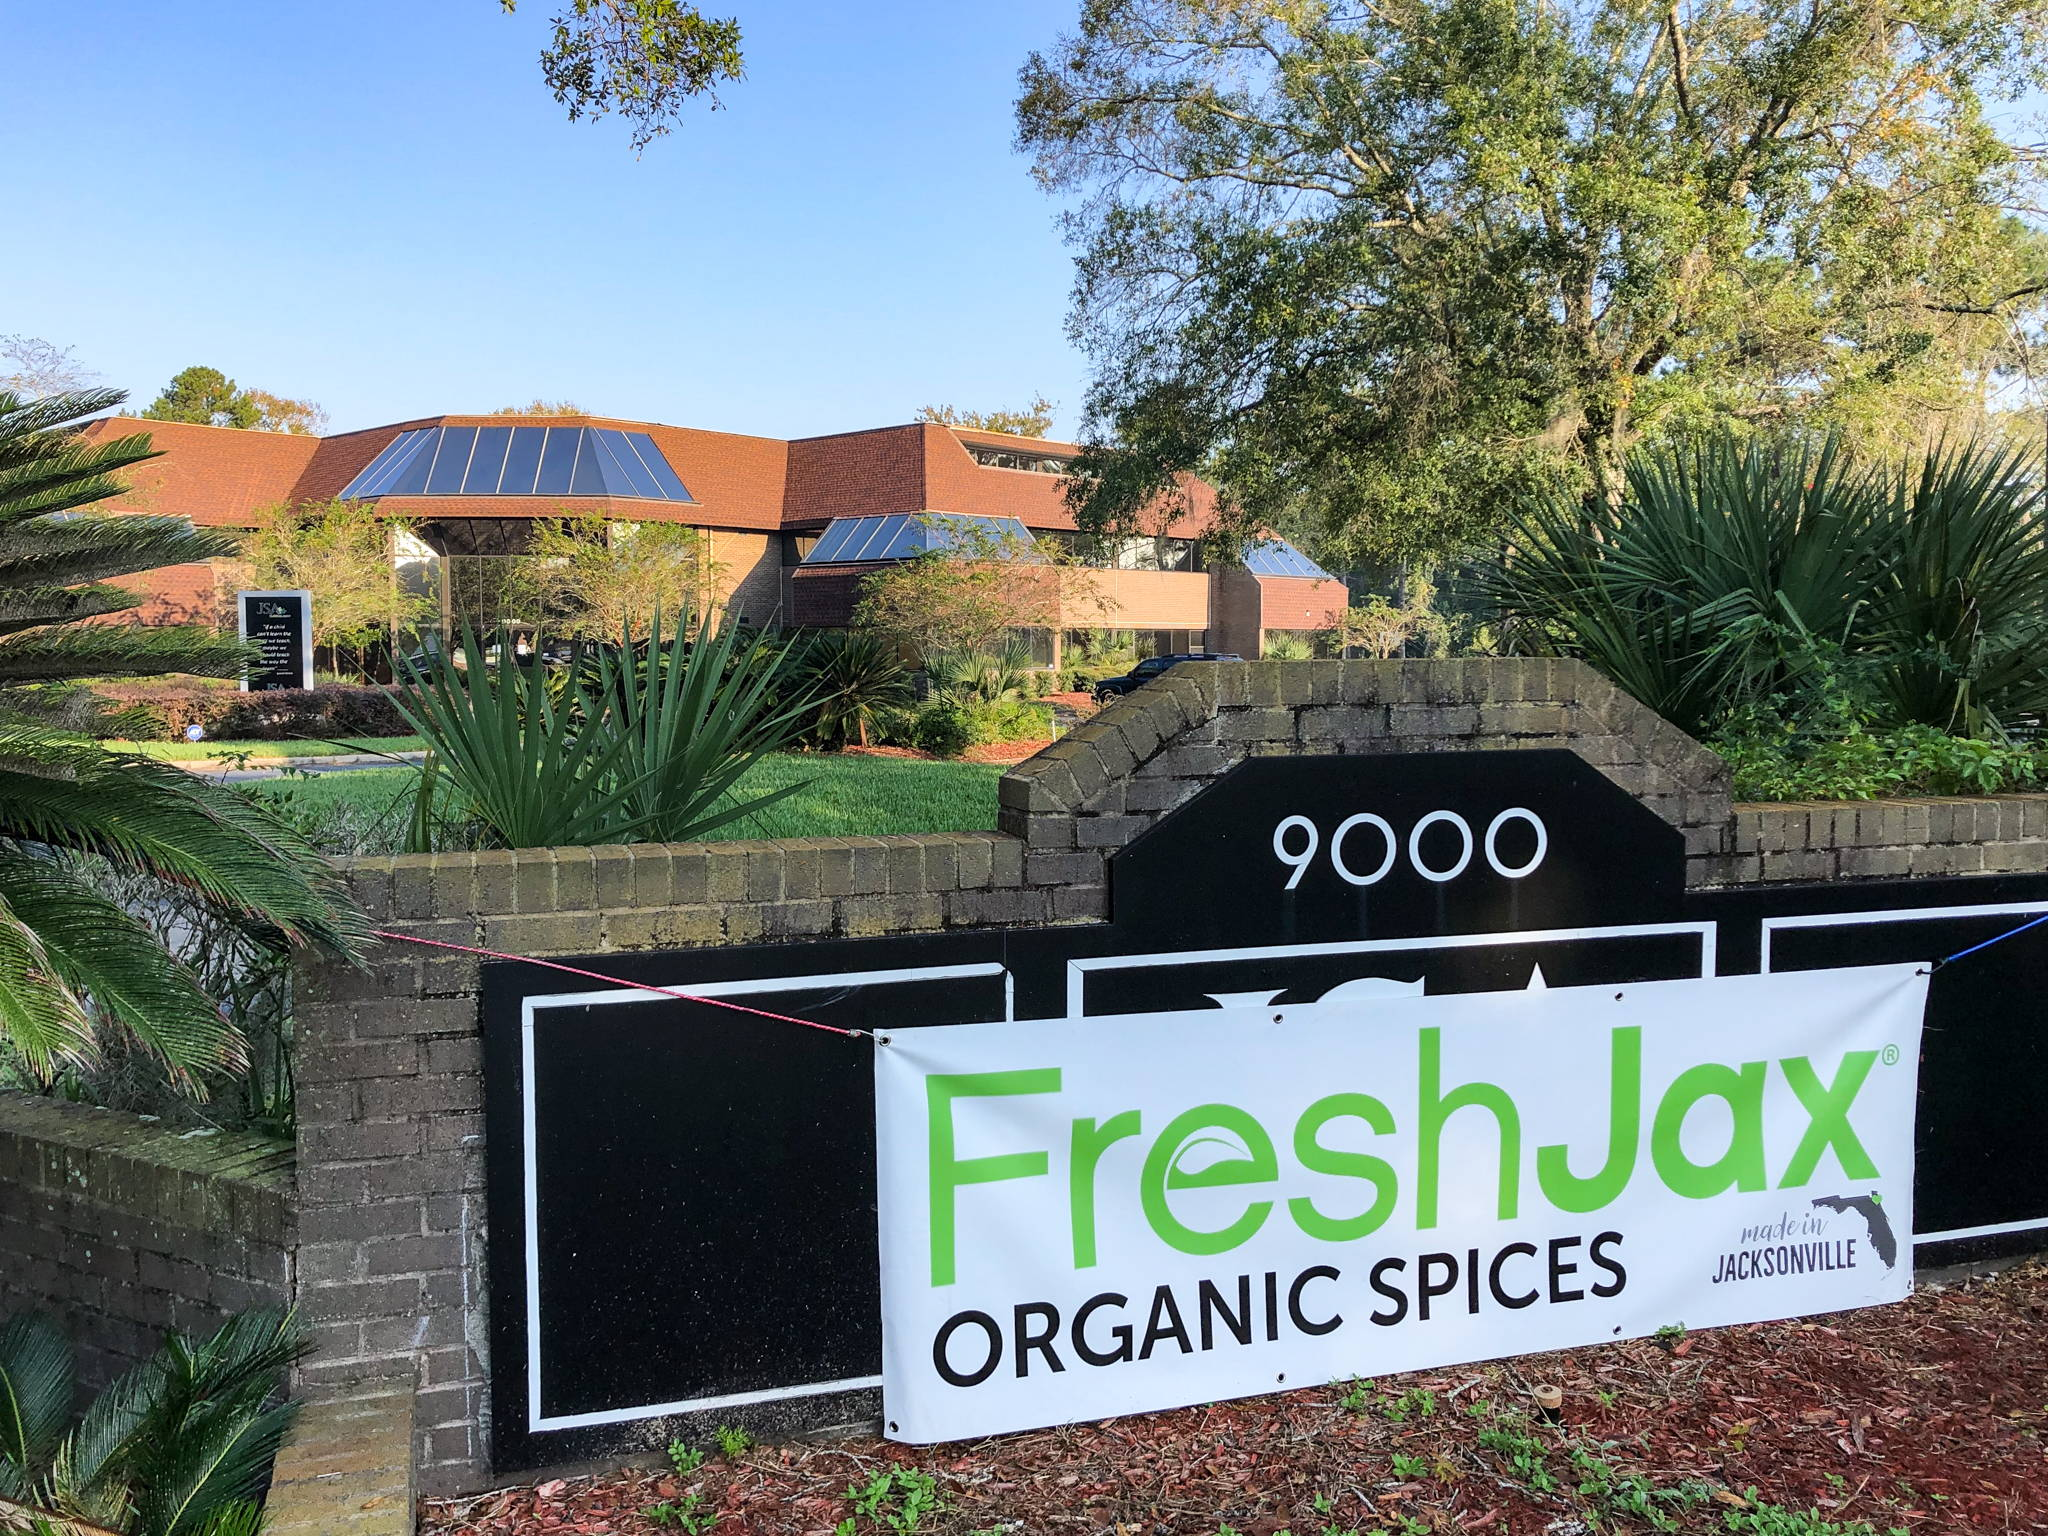 FreshJax Organic Spices sign hanging in front of new building